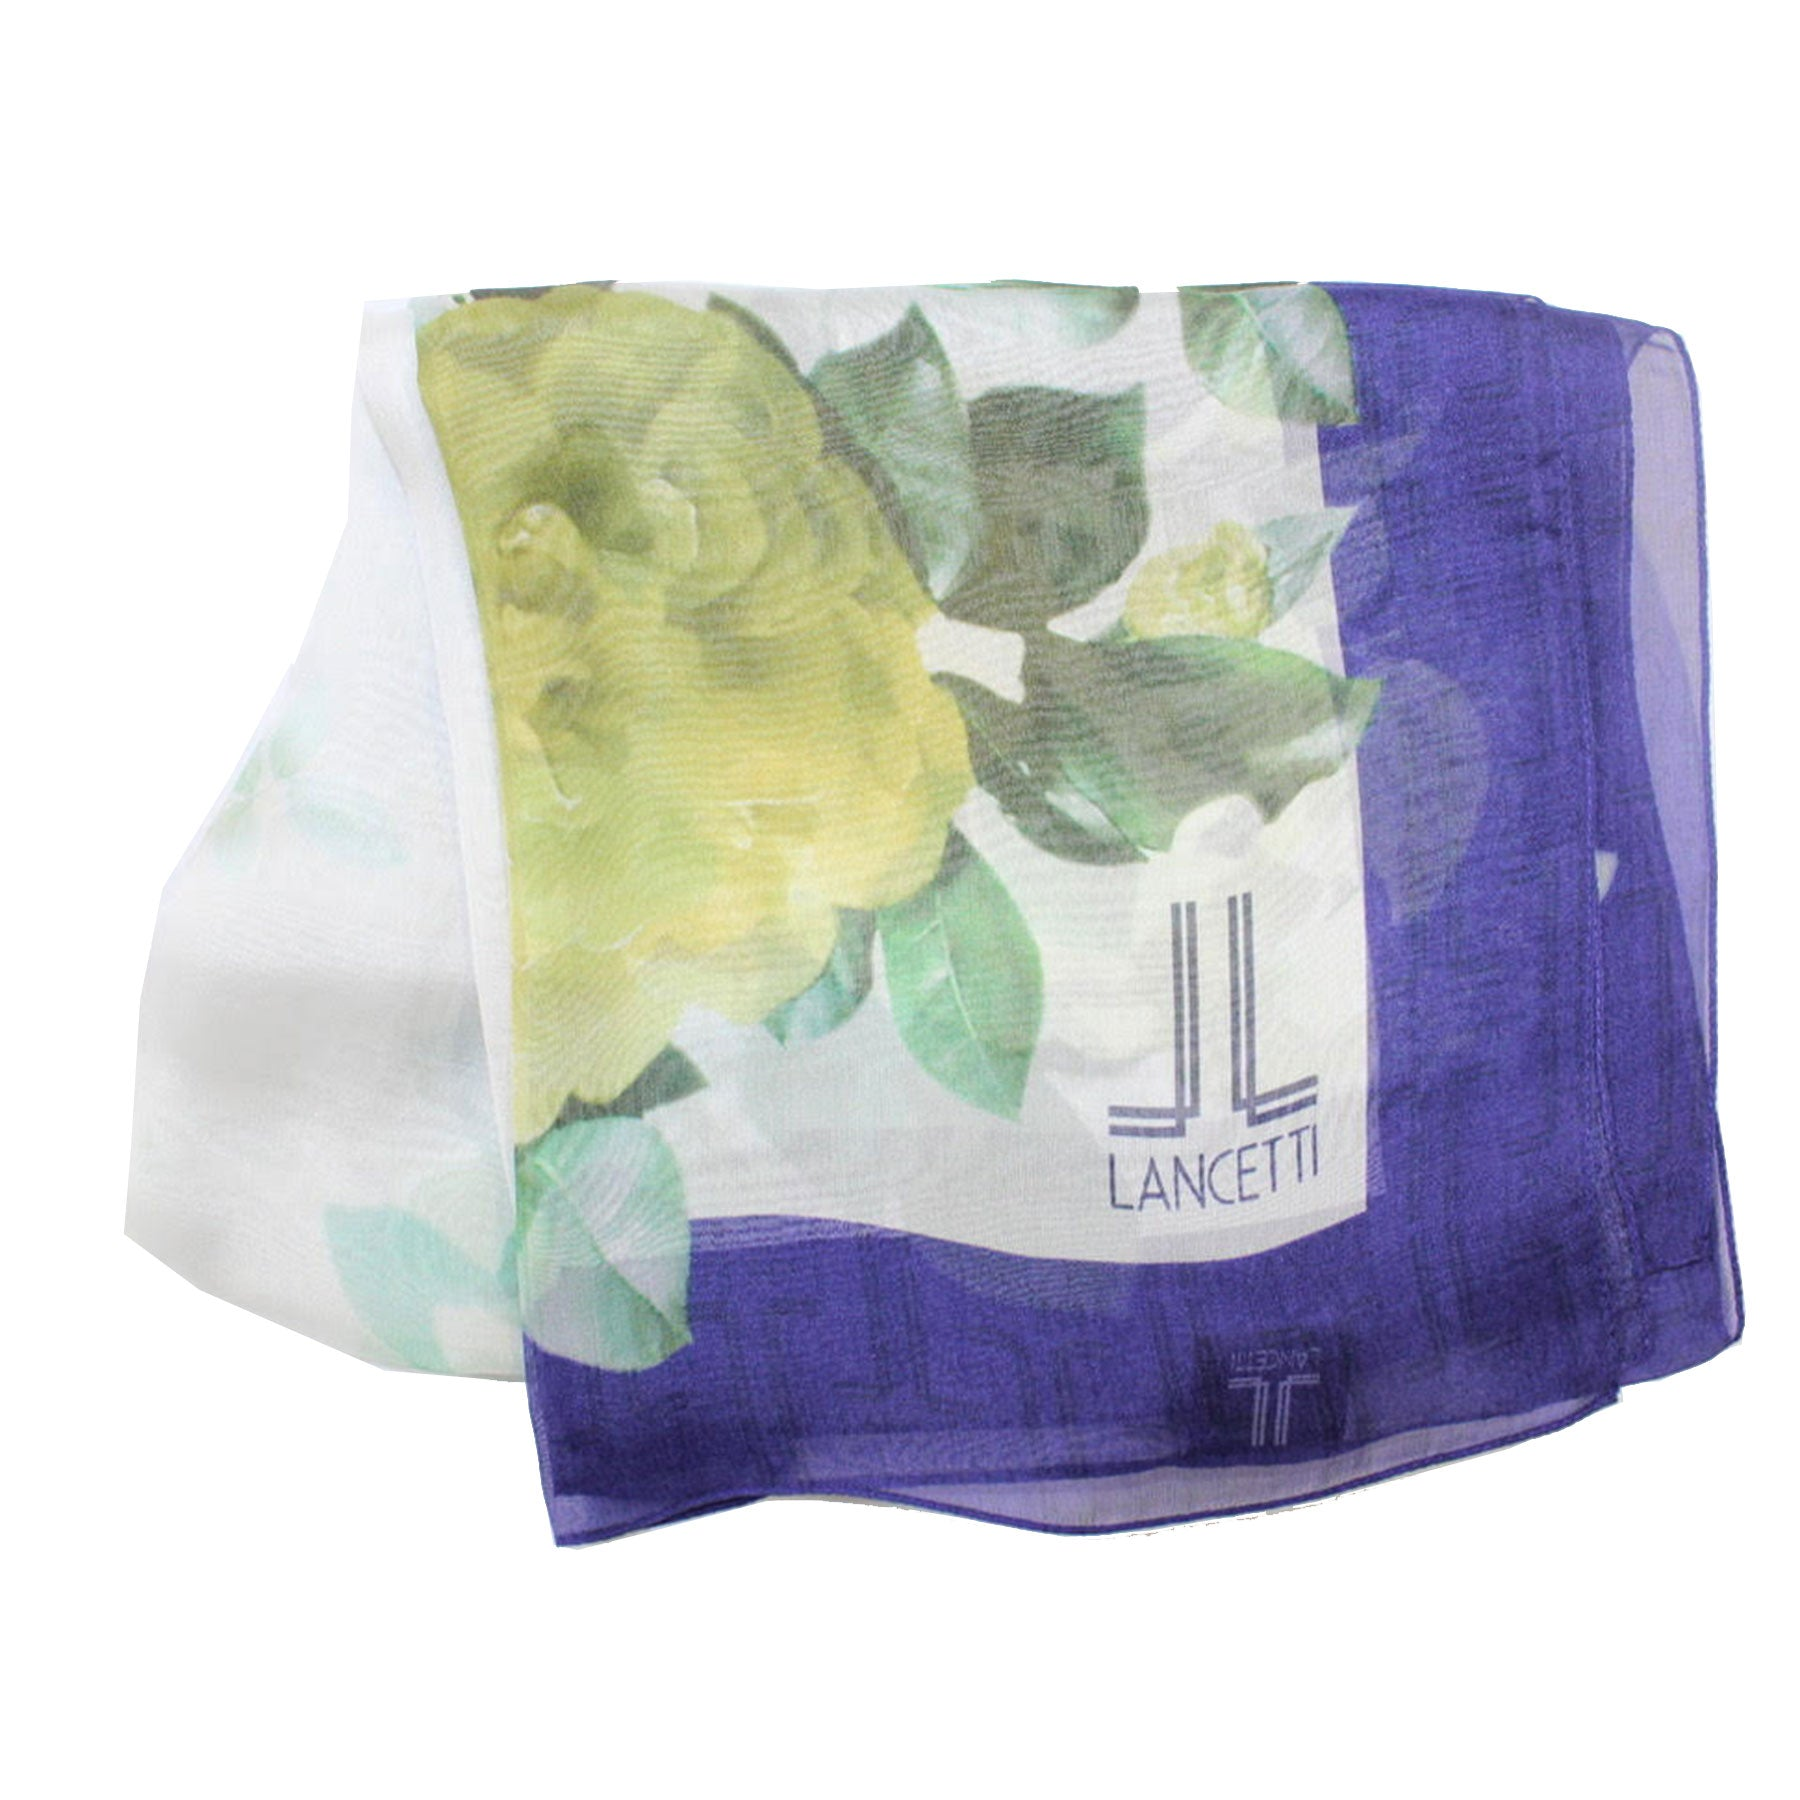 Lancetti Scarf Purple Green Floral - Silk Shawl Made In Italy